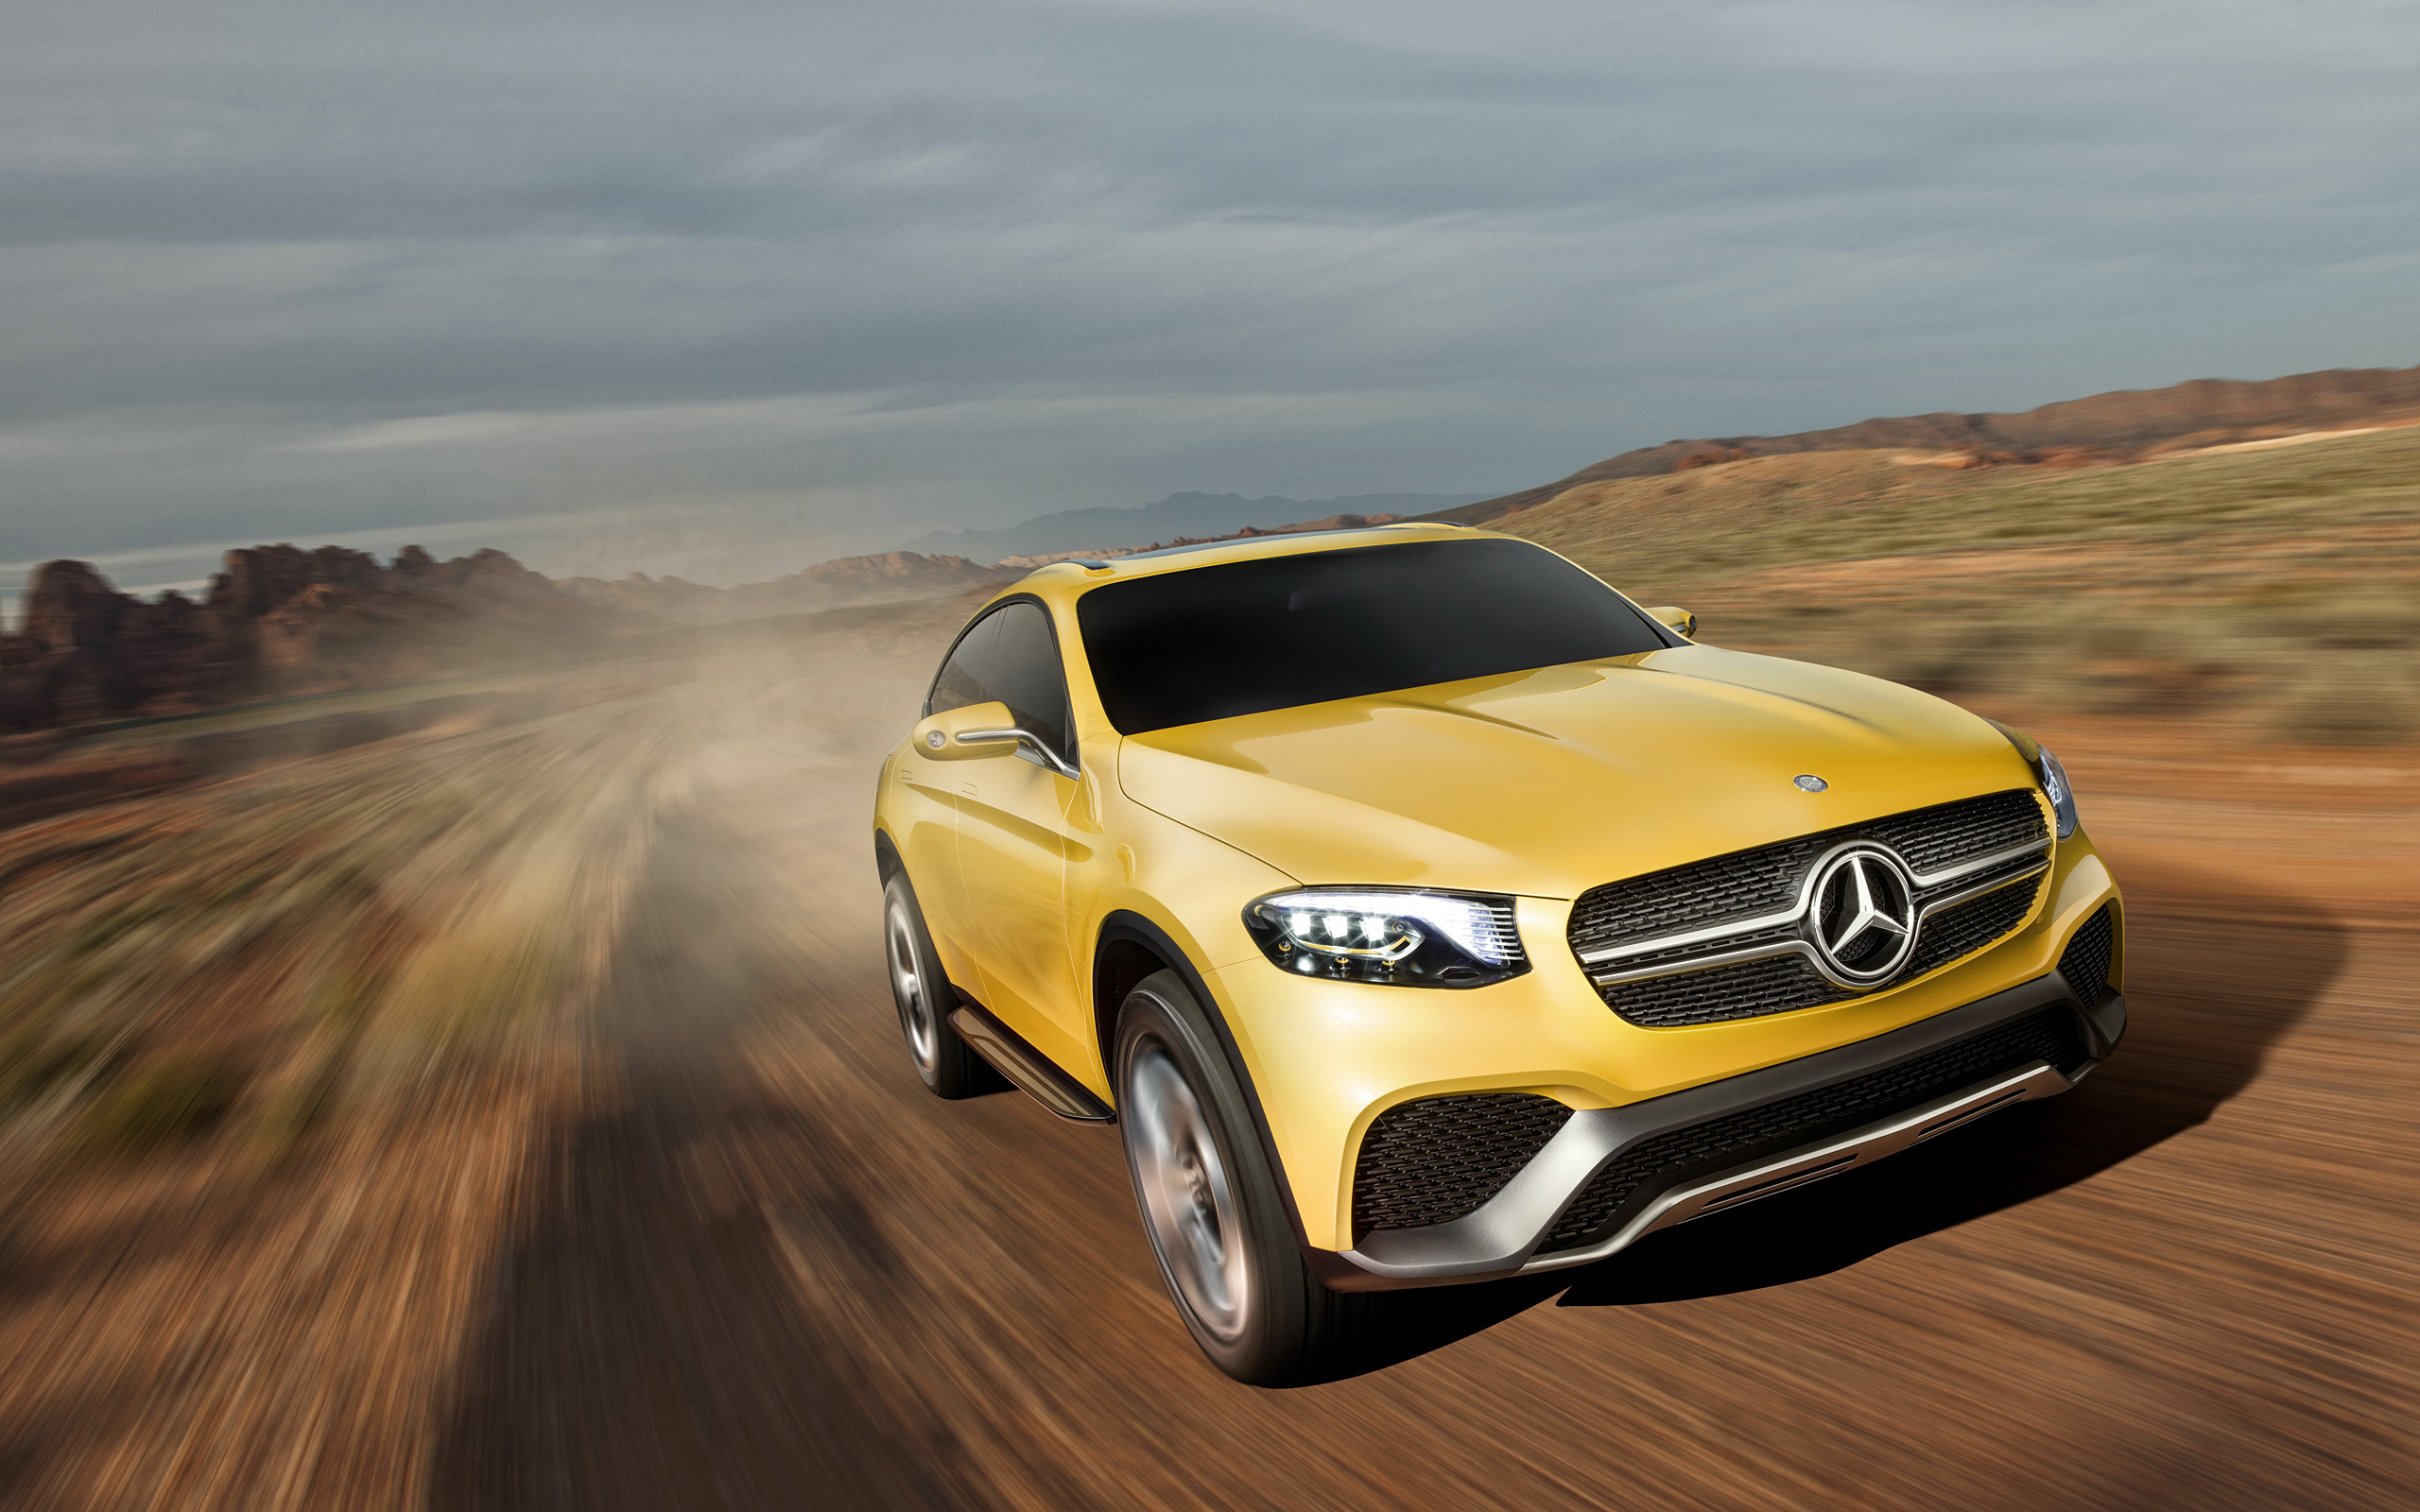 2015 Mercedes Benz Glc Coupe Concept Wallpapers Viruscars